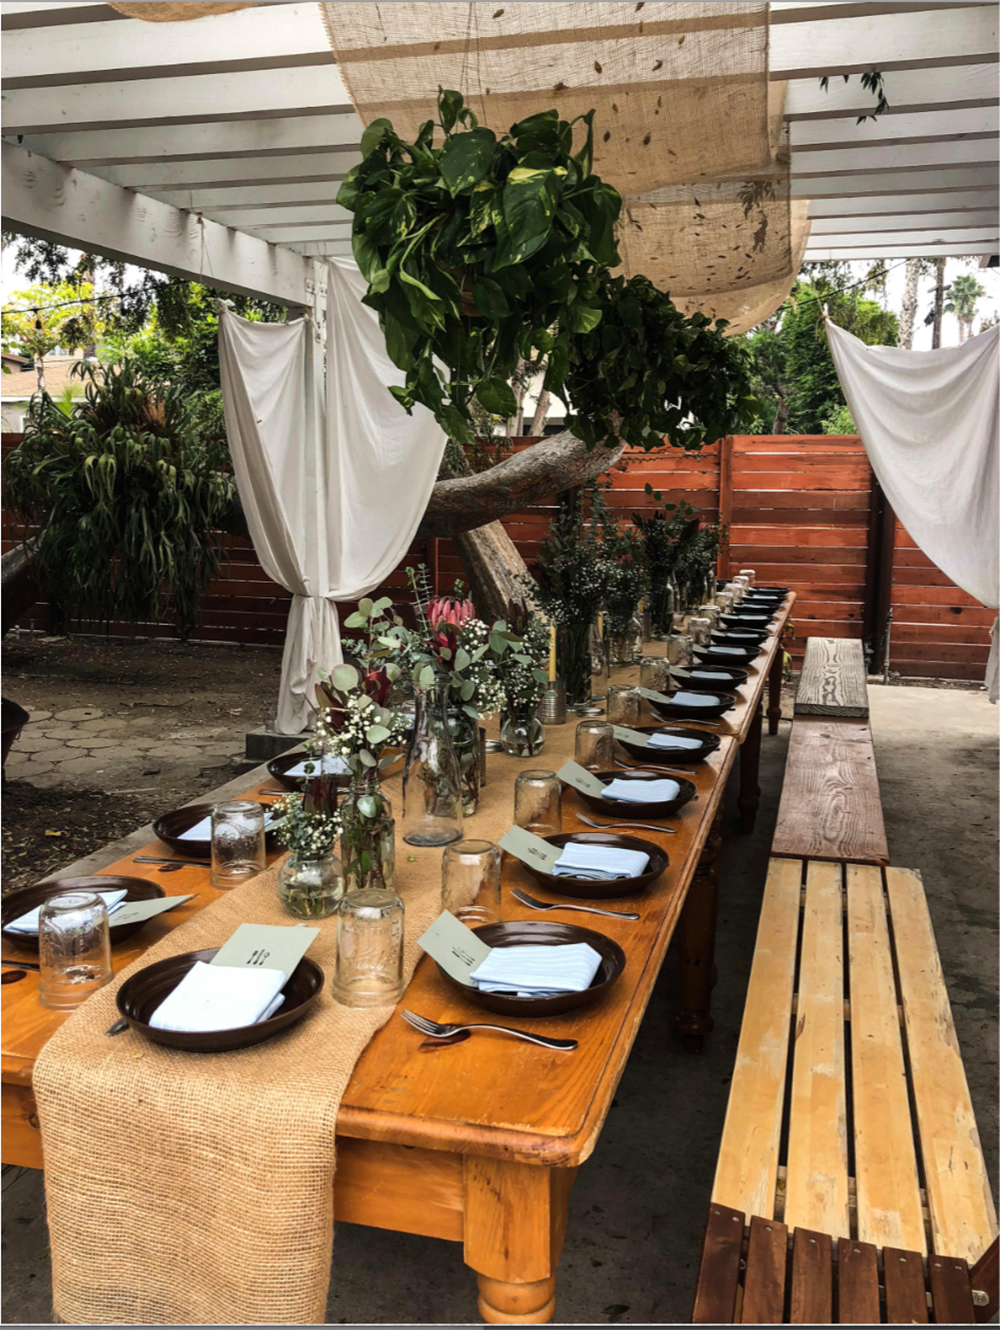 Explore the power of Mediterranean cuisine, plants and herbs over a zero waste plant-based dinner with tonic pairings and live music. [Image courtesy of Goldthread]